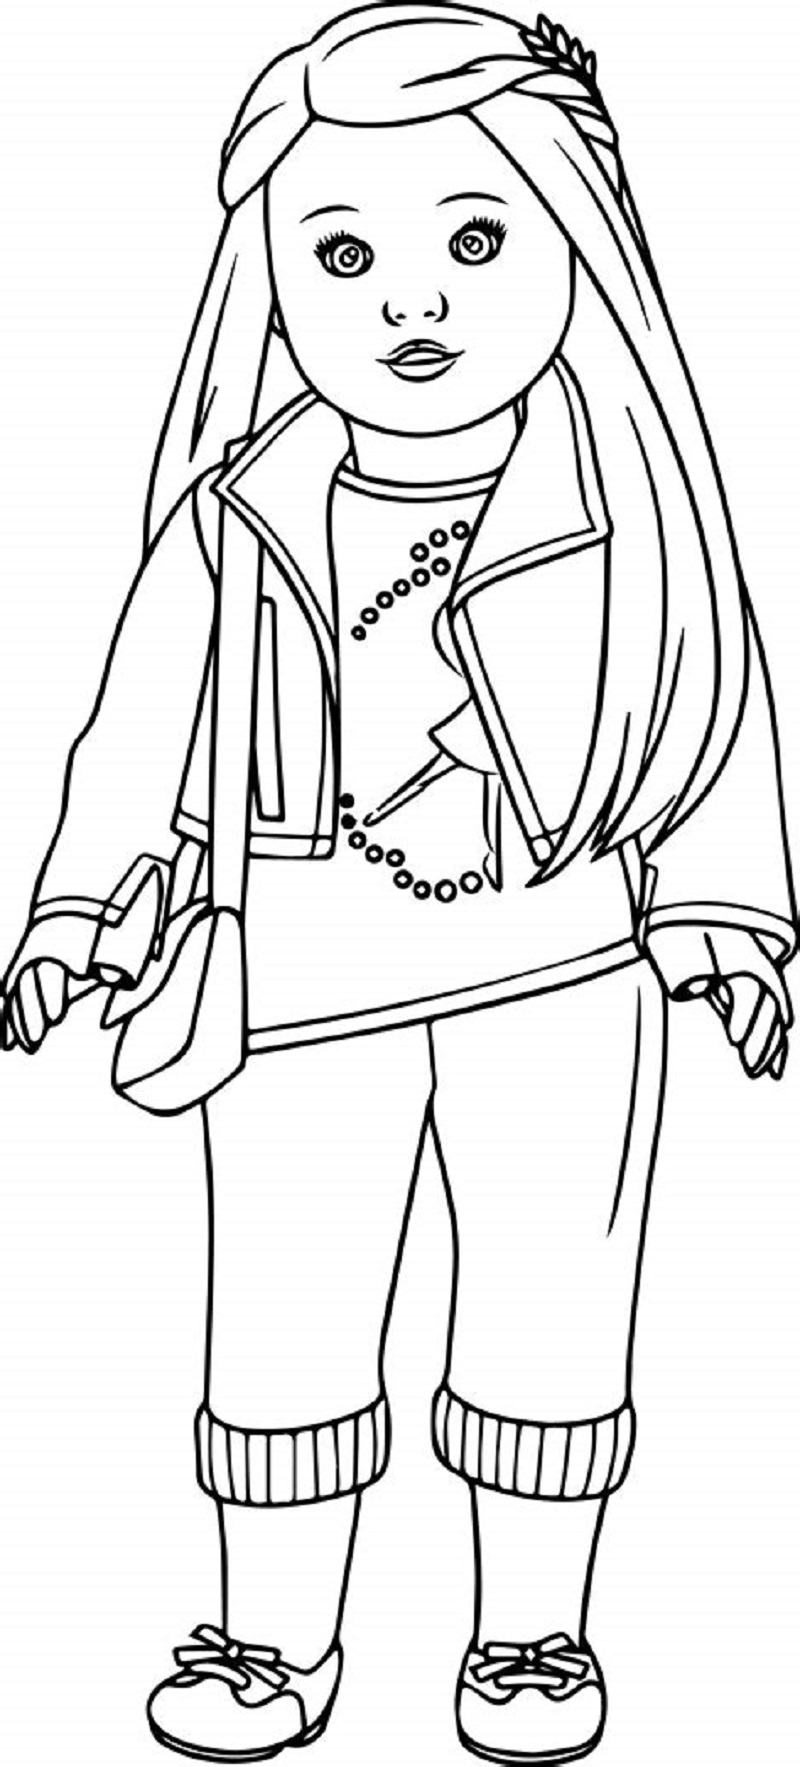 american girl doll coloring page american girl coloring pages kit at getcoloringscom girl doll american page coloring